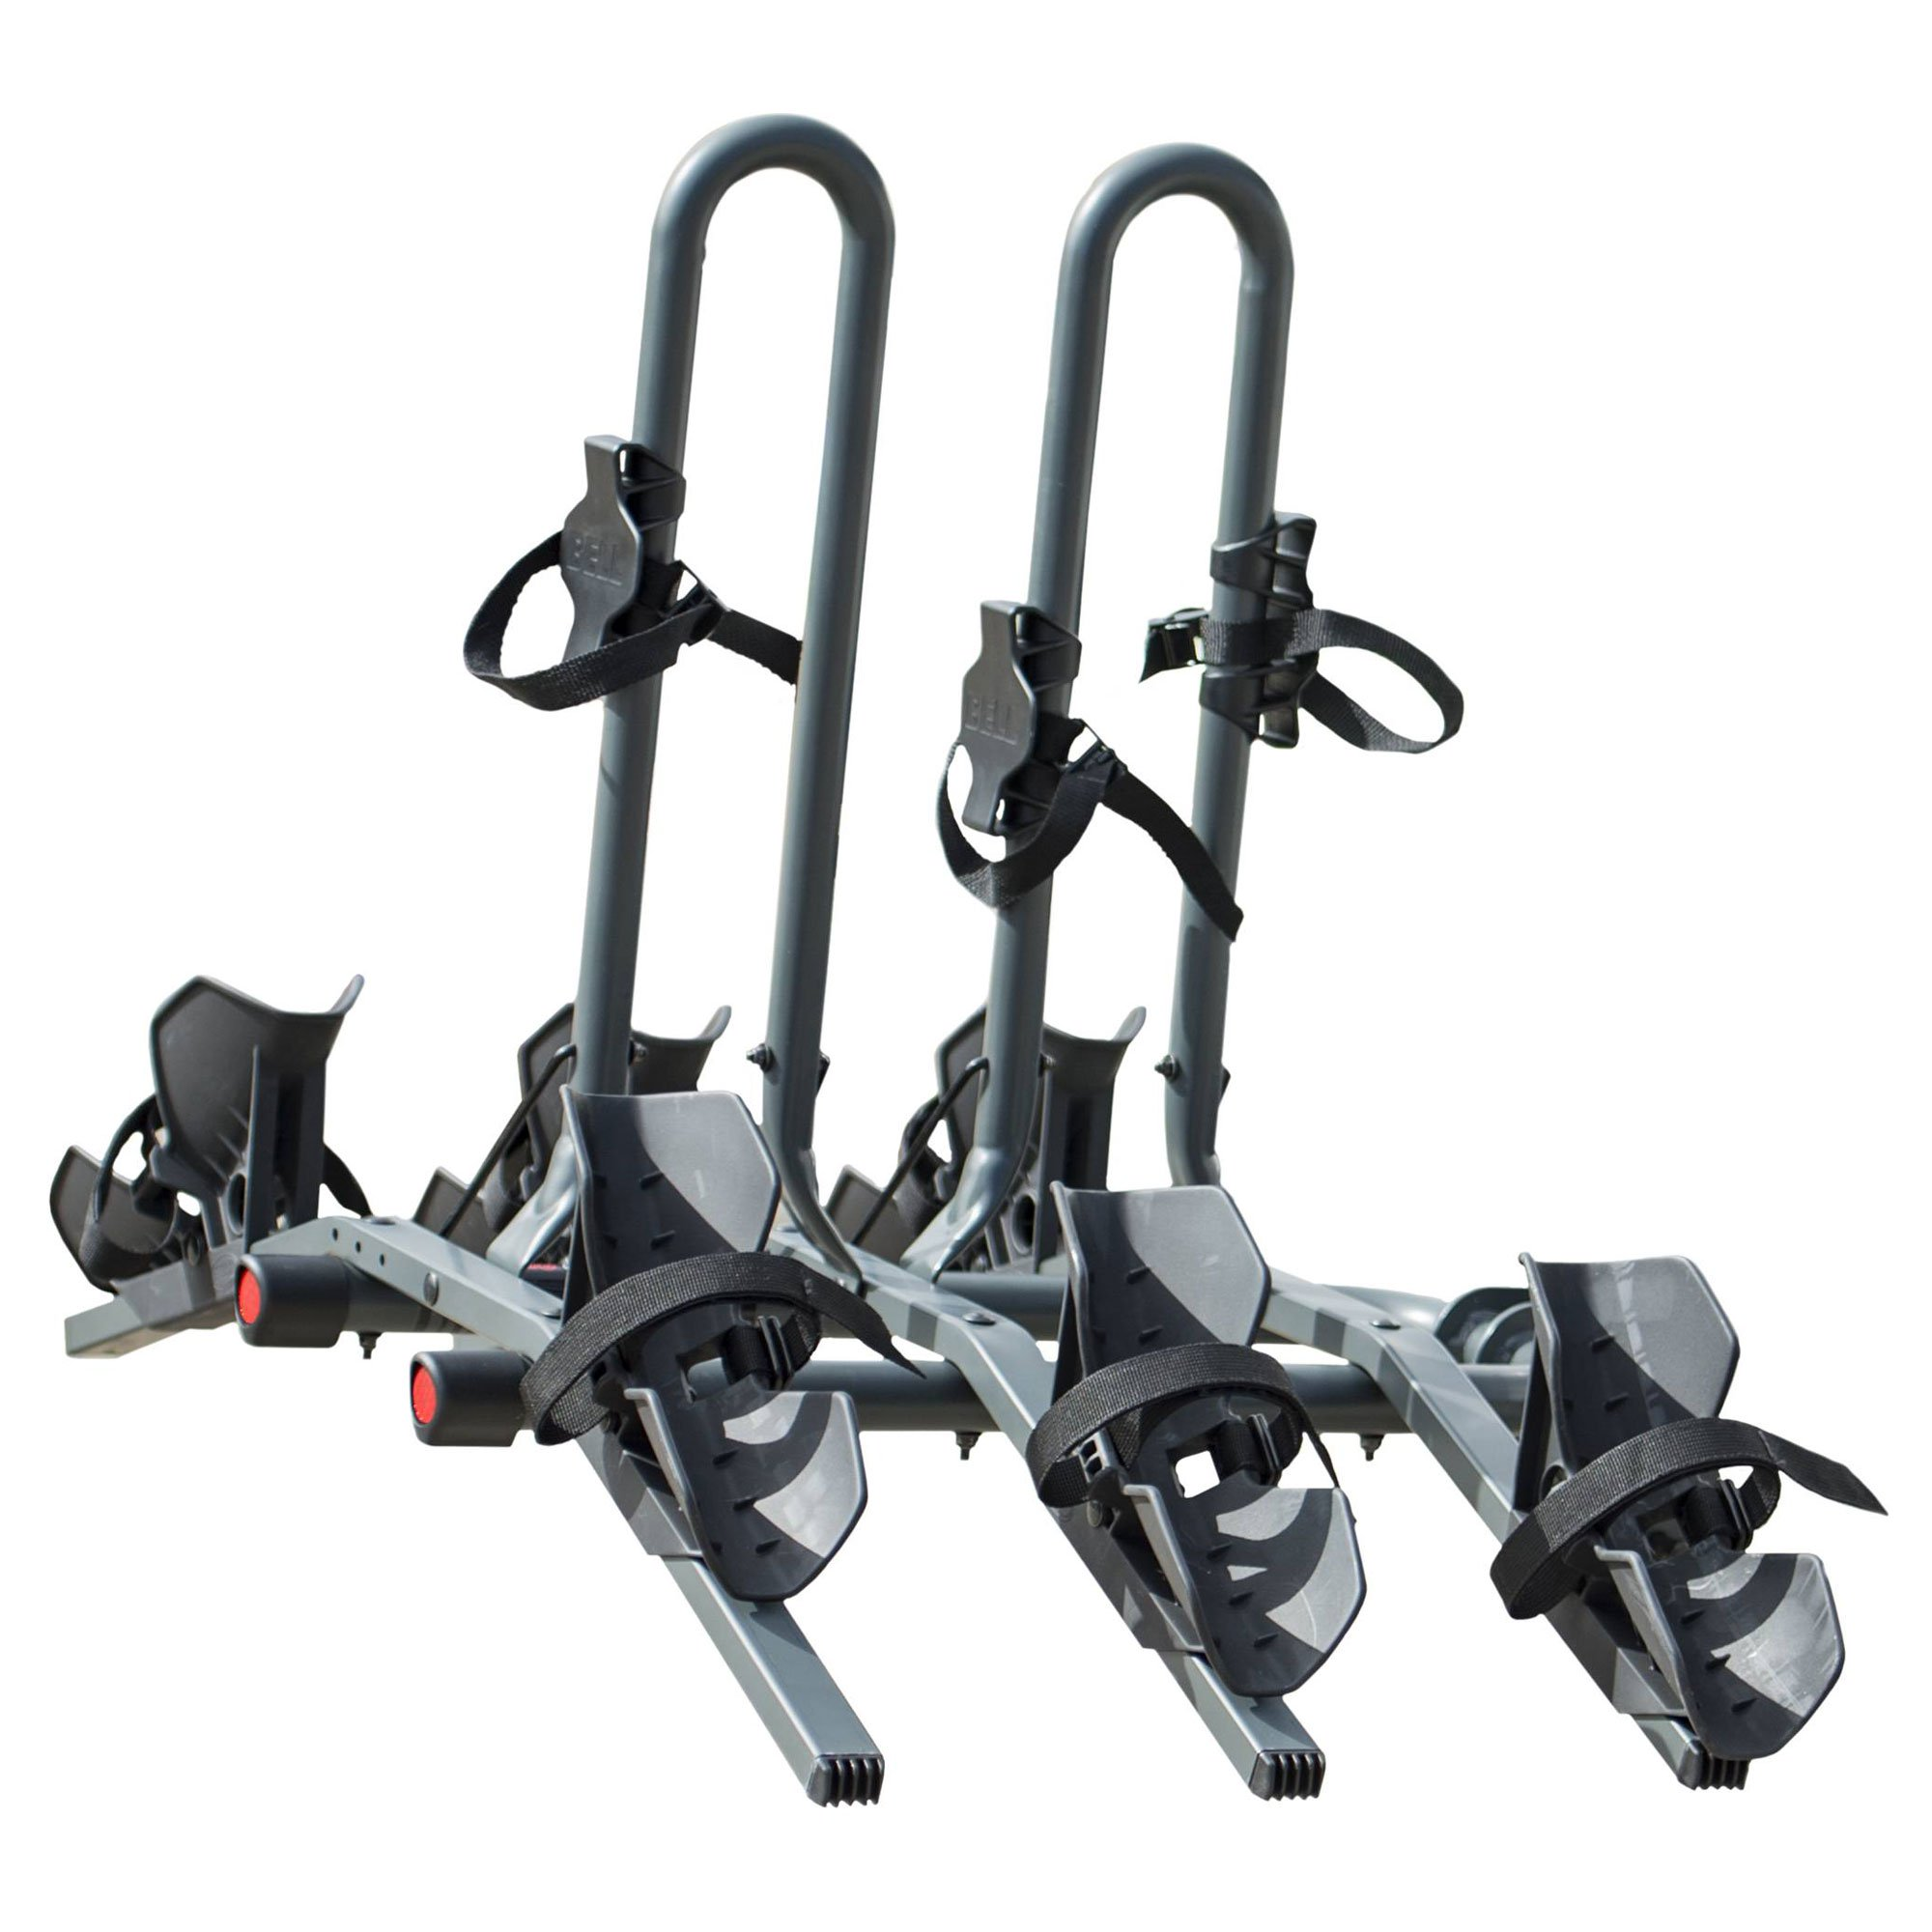 Bell Sports RIGHT UP 350 Platform Hitch Rack, 3 Bike